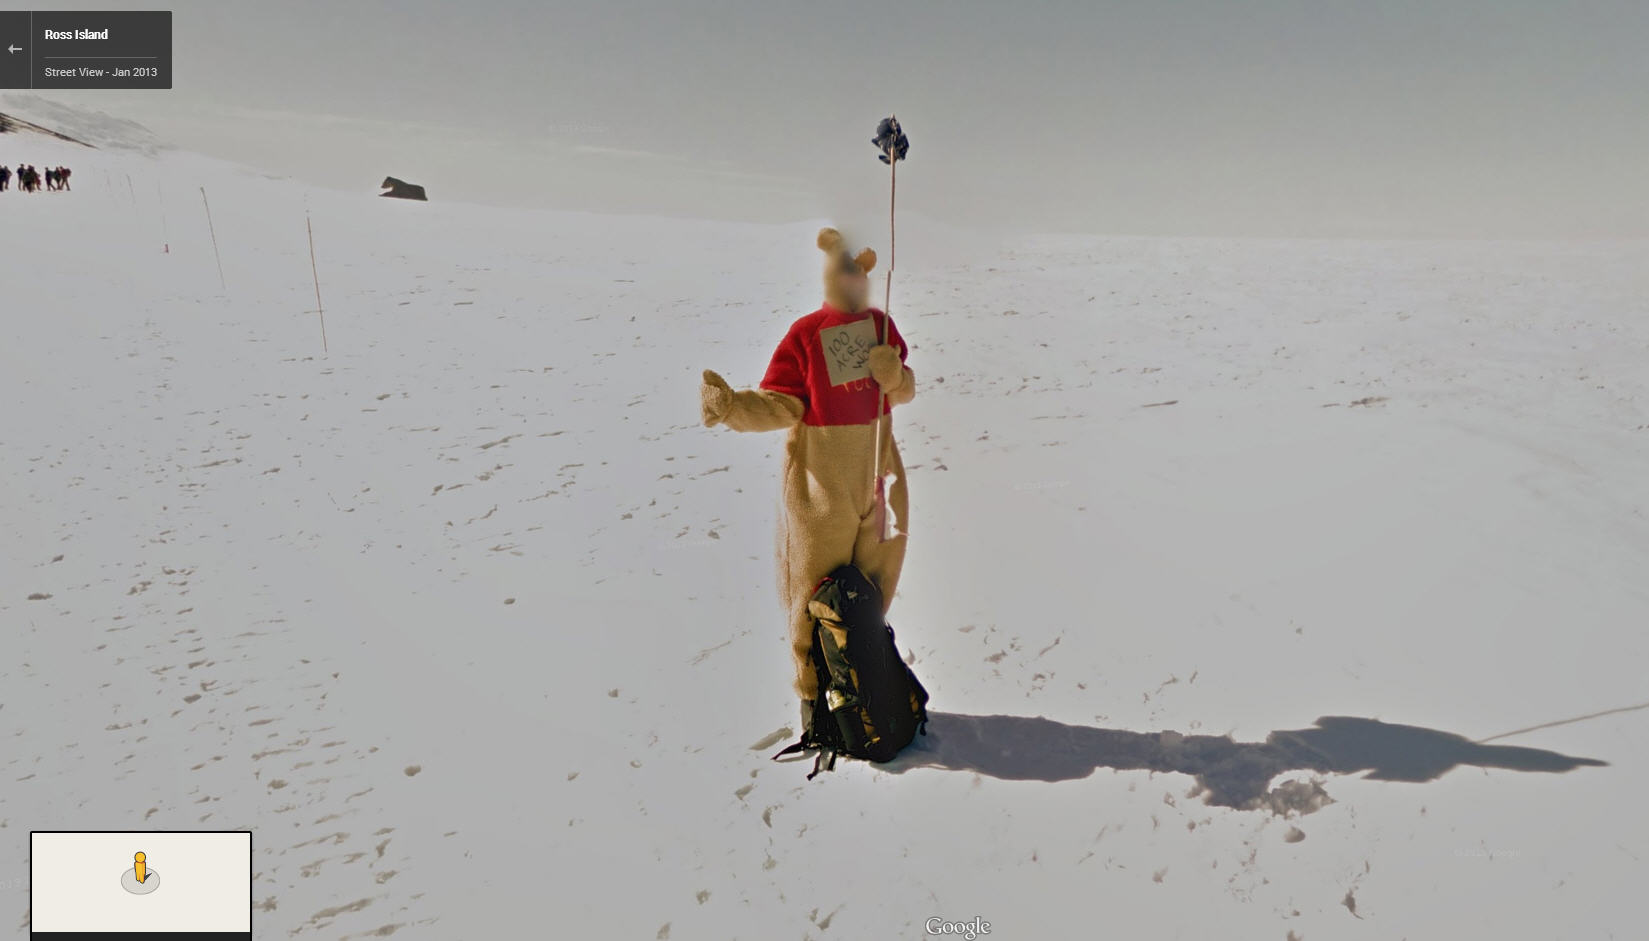 Winnie the Pooh cosplayer hitchhiking to 100 Acre Wood in Antarctica